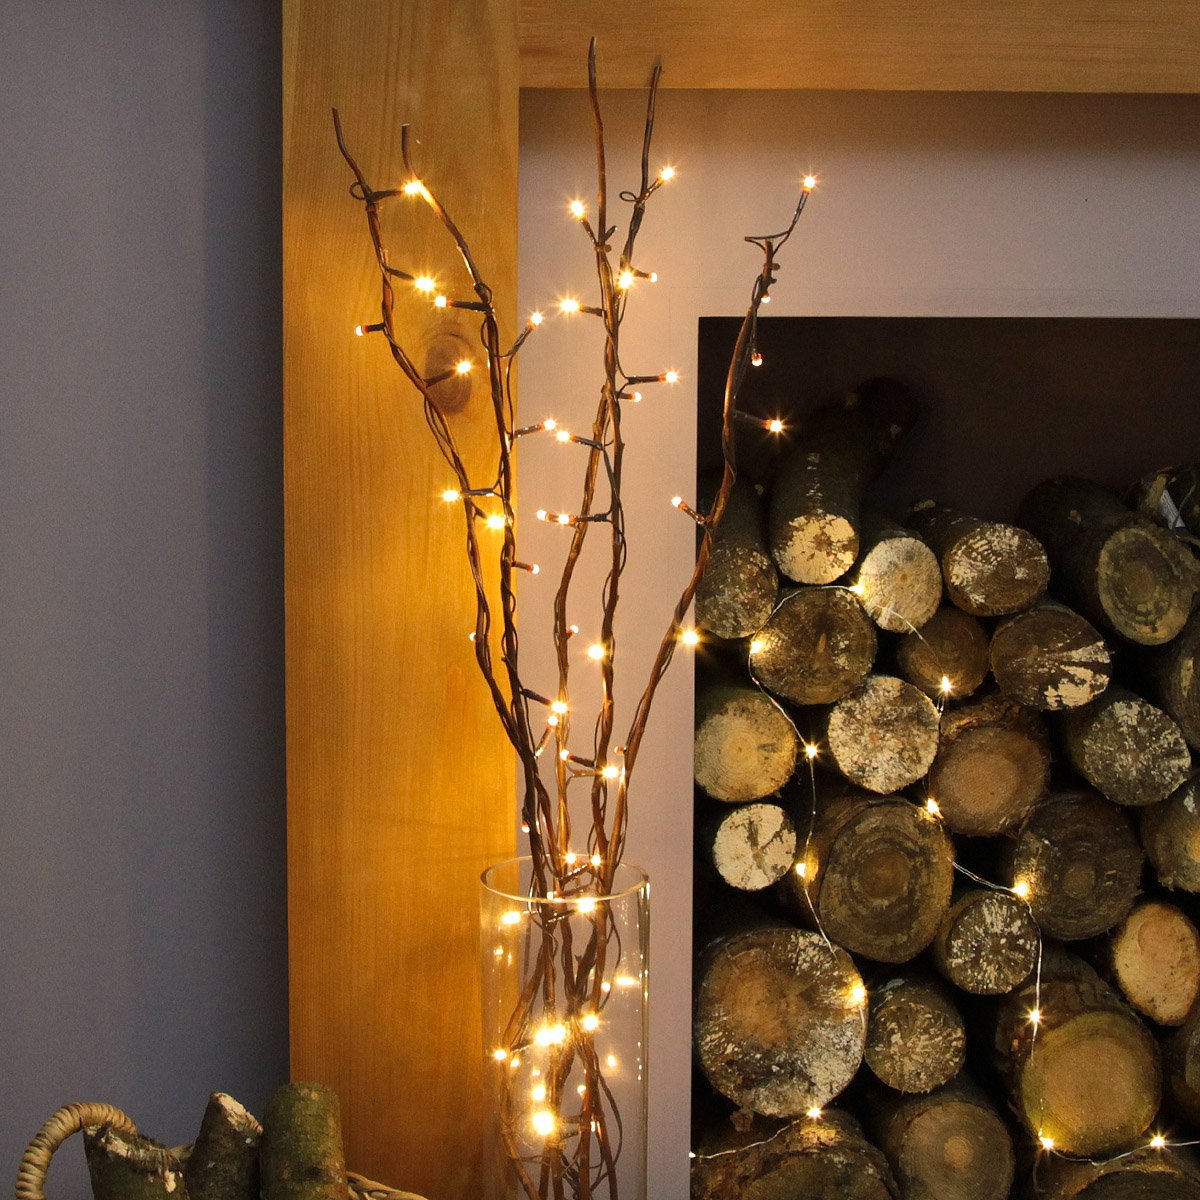 Festive Lights 5 x 87cm Decorative Twig Lights with 50 Warm White LEDs (Brown) [Energy Class A++]